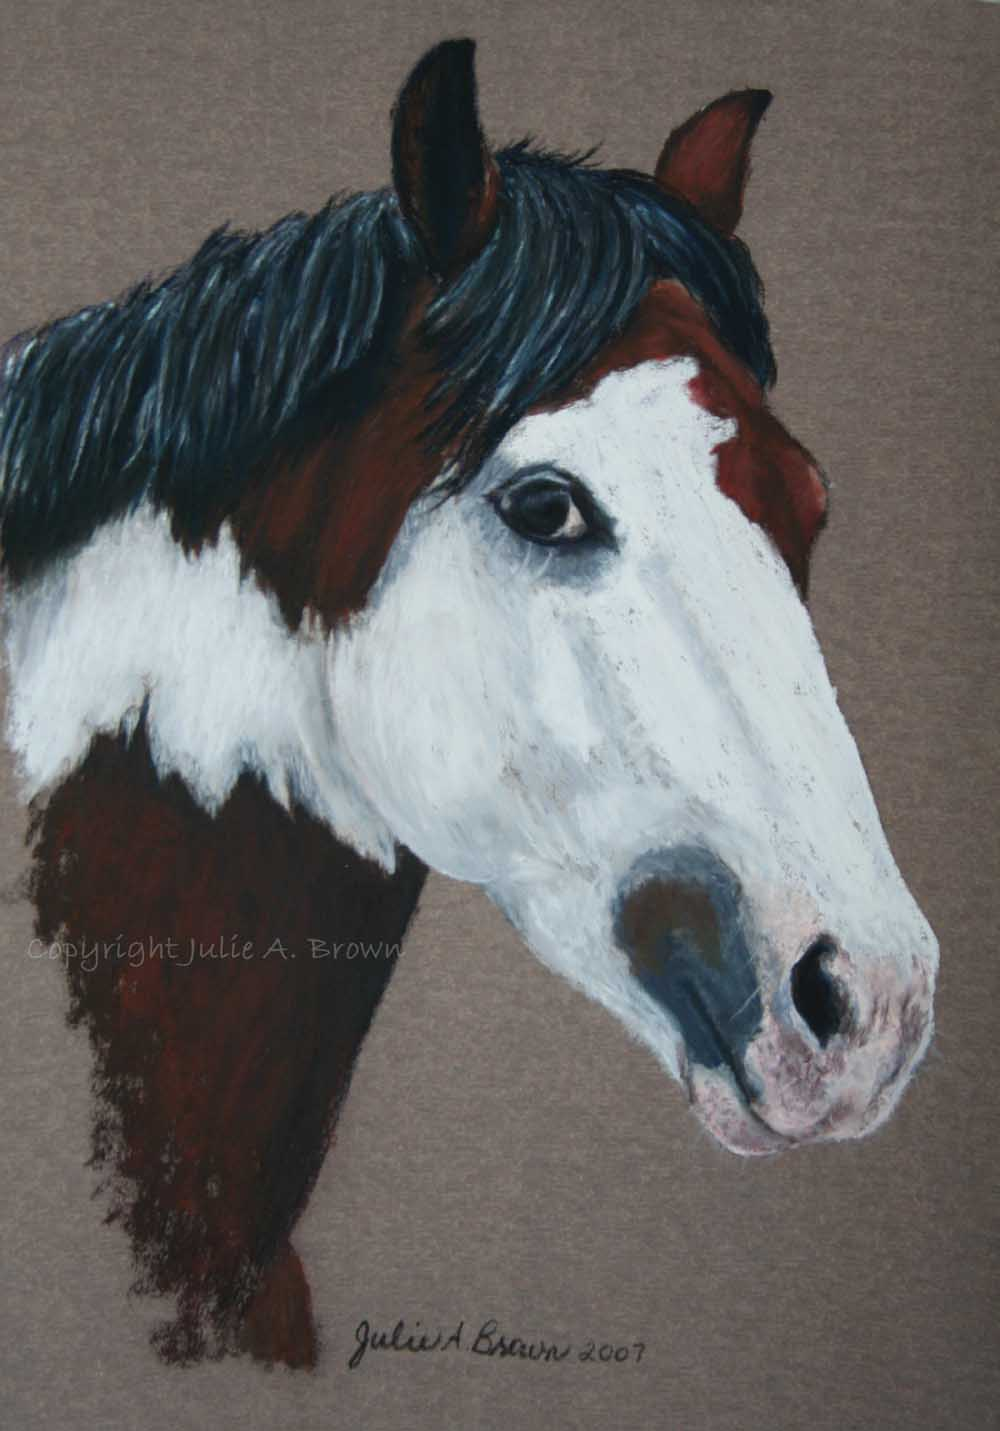 Wally - Pastel horse portrait by Julie A. Brown